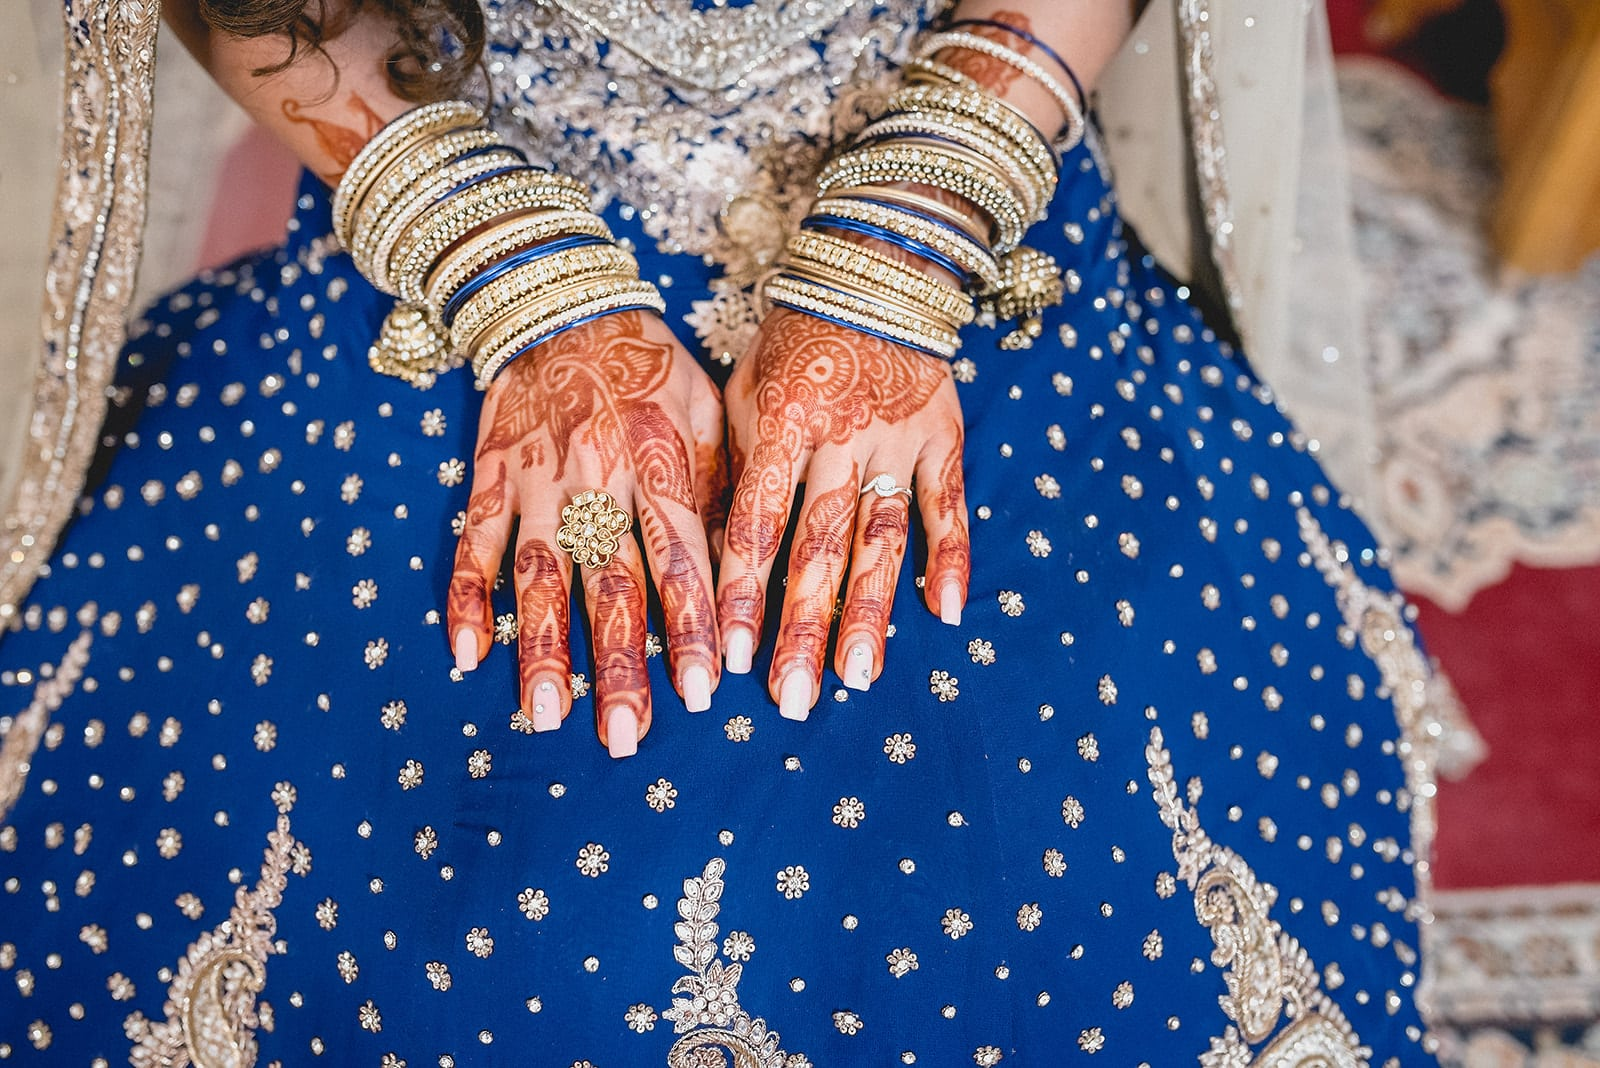 Bride's henna painted hands lying in her lap with traditional wedding bands